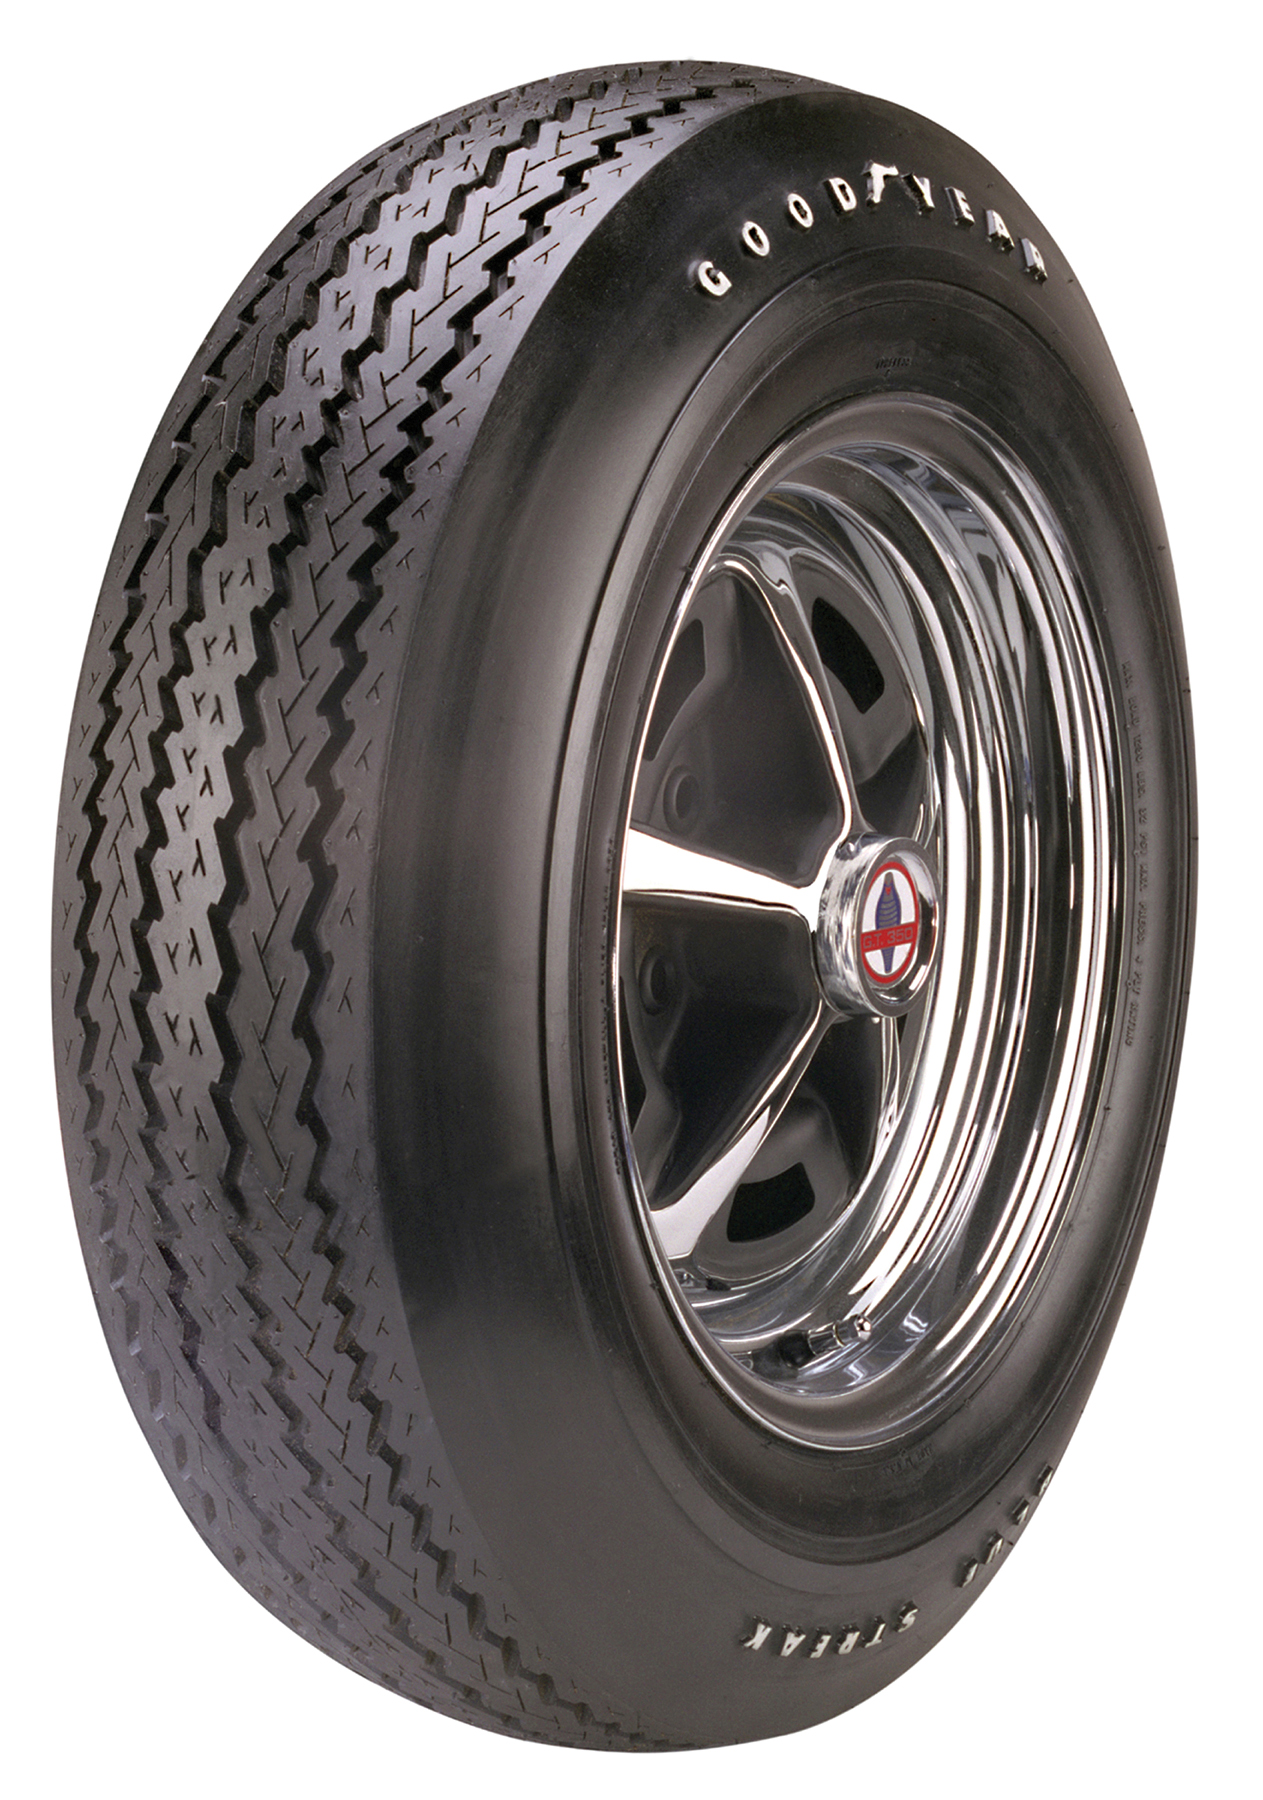 Goodyear Red Letter Tires Wanted 225 60r16 Goodyear Eagle